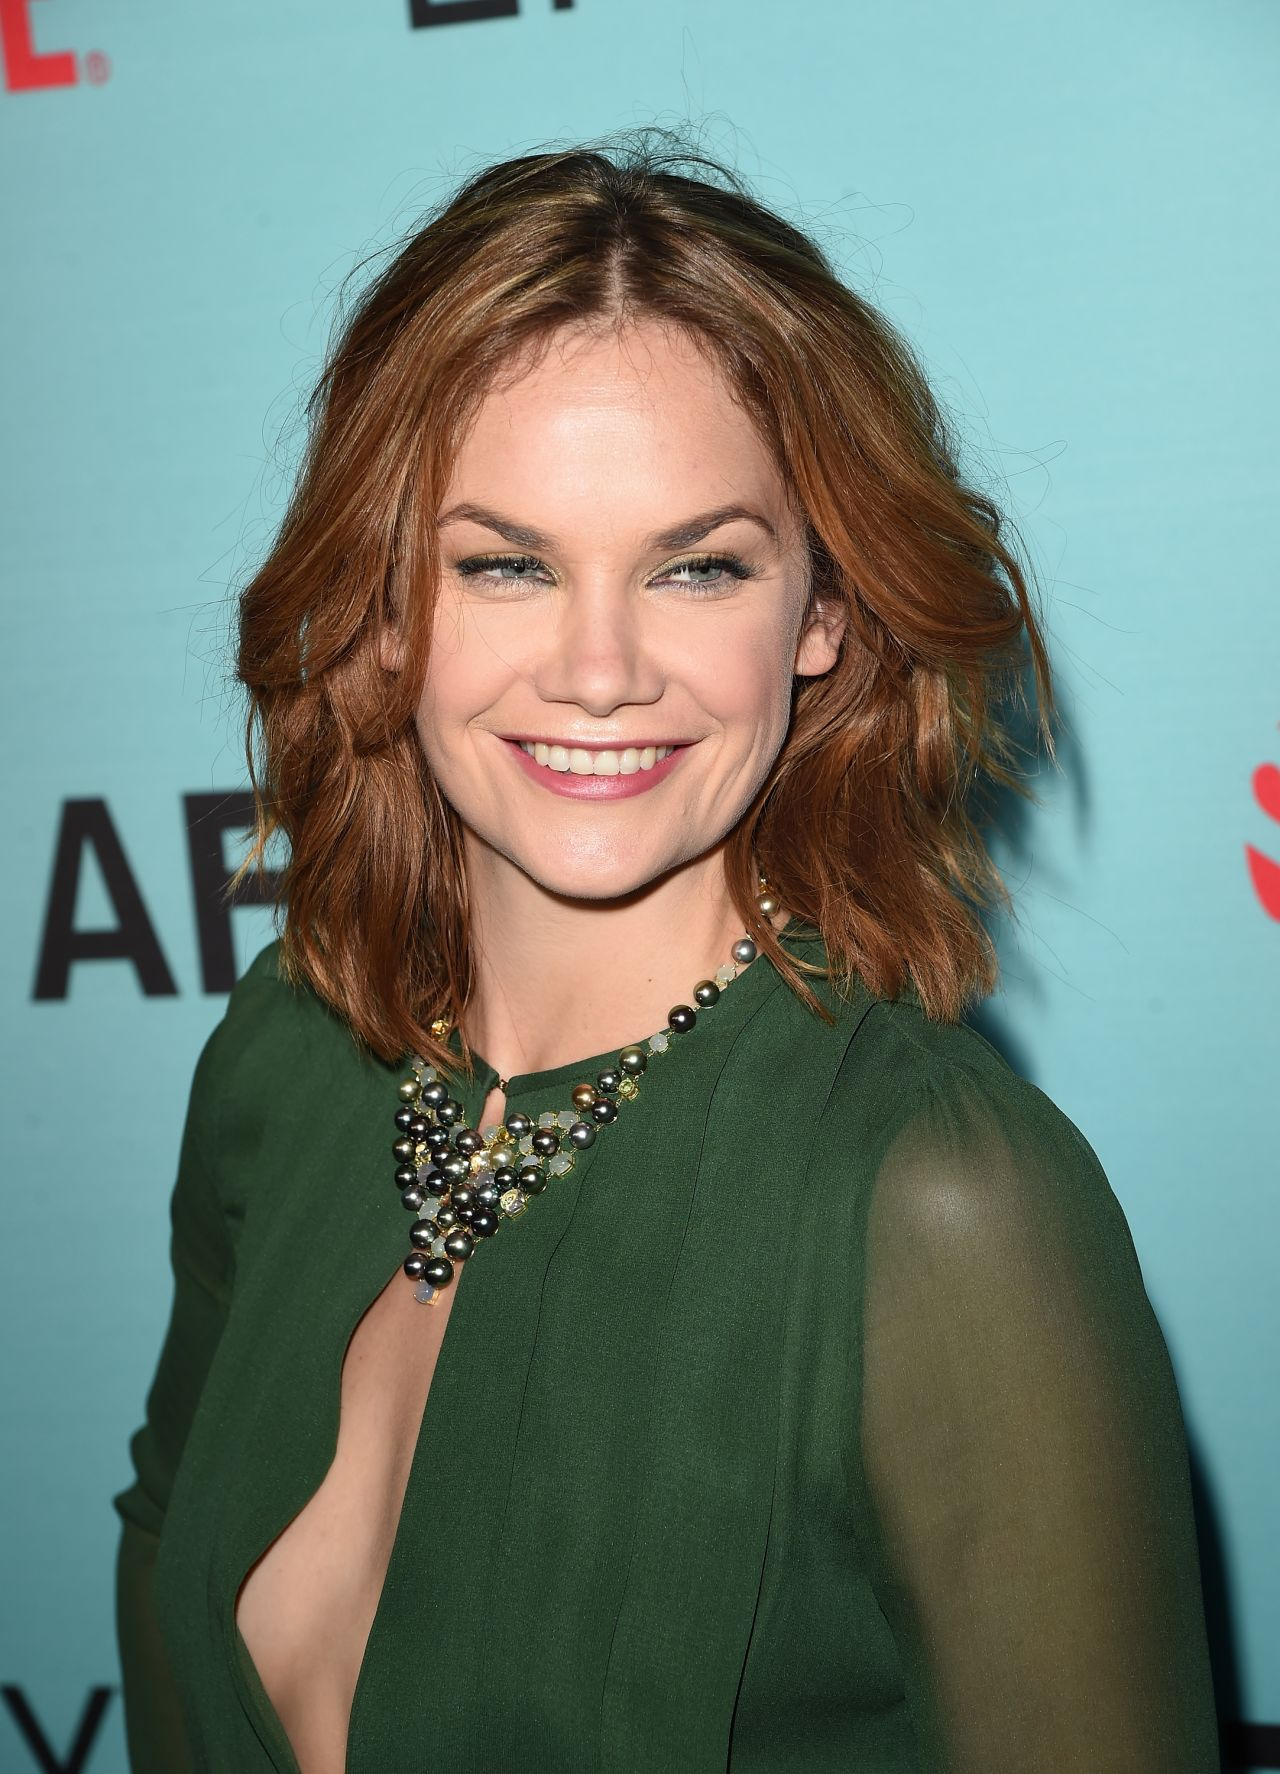 image Ruth wilson in the affairruth wilson in the affair